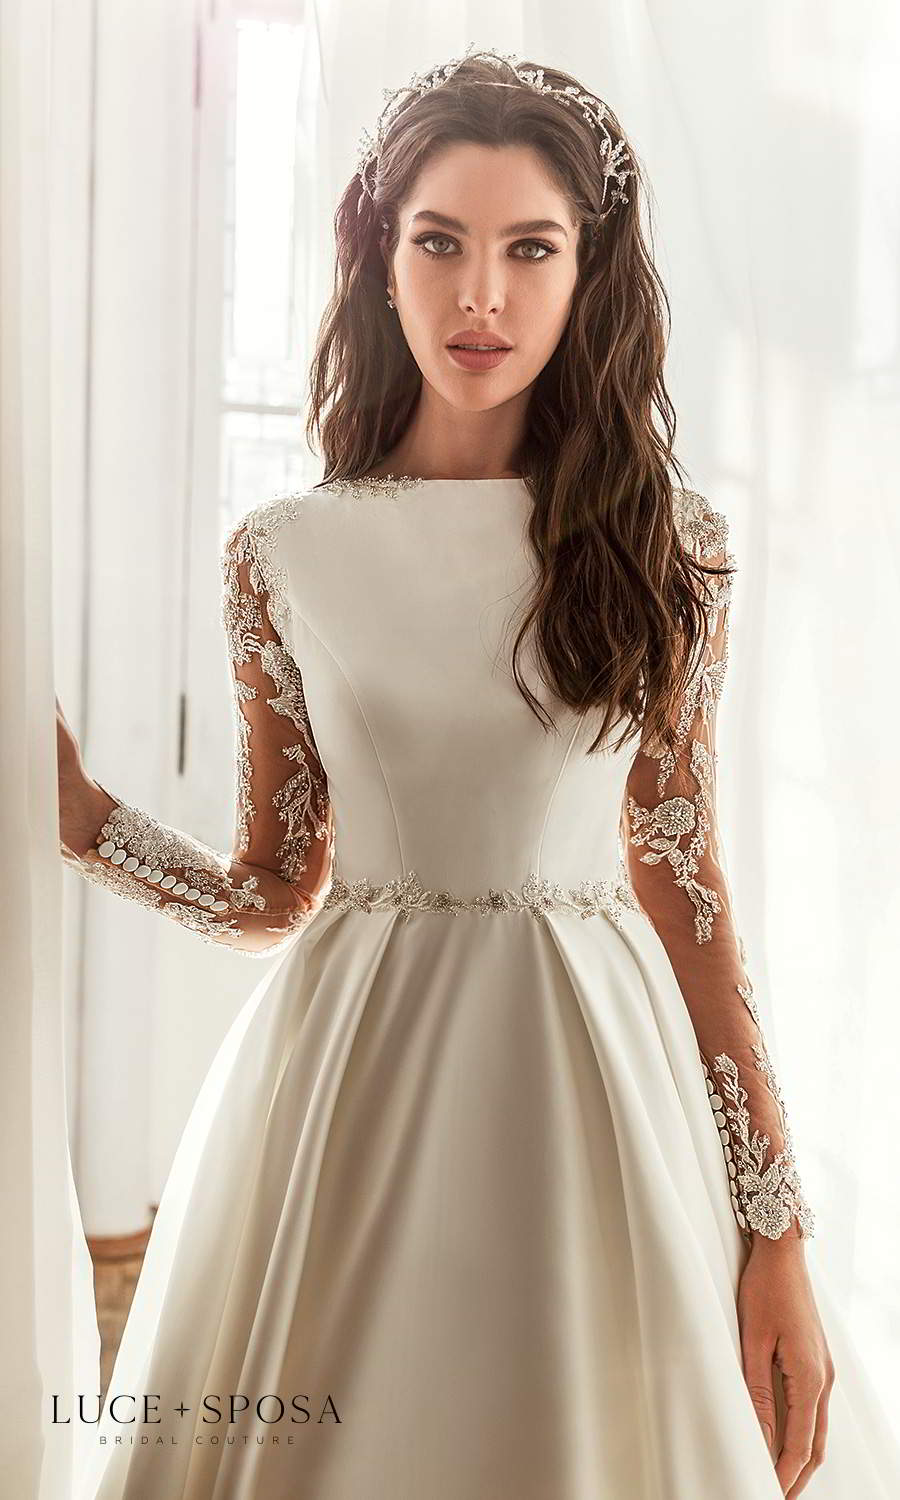 luce sposa 2021 shades of couture bridal illusion long sleeves bateau neckline embellished waist minimalist a line ball gown wedding dress chapel trian (paige) zv